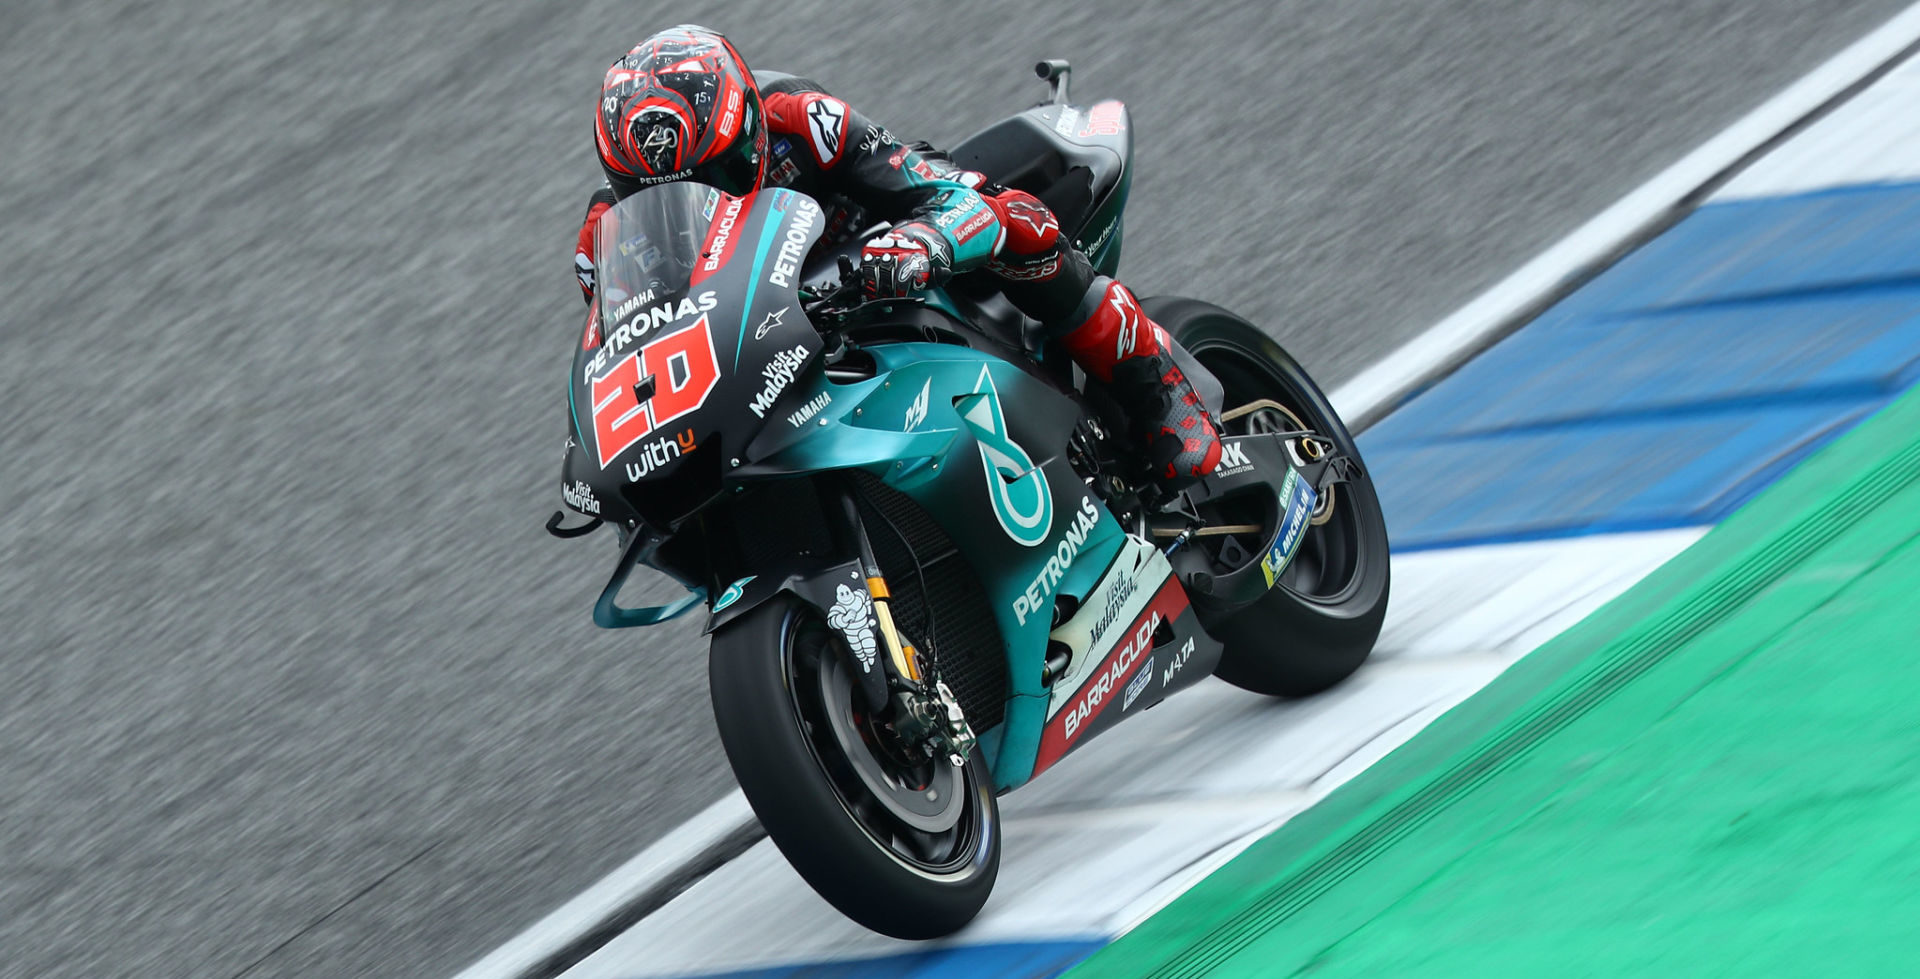 Motogp Fabio Quartararo Quickest Top 21 Separated By 1 5 Seconds In Fp2 In Thailand Roadracing World Magazine Motorcycle Riding Racing Tech News